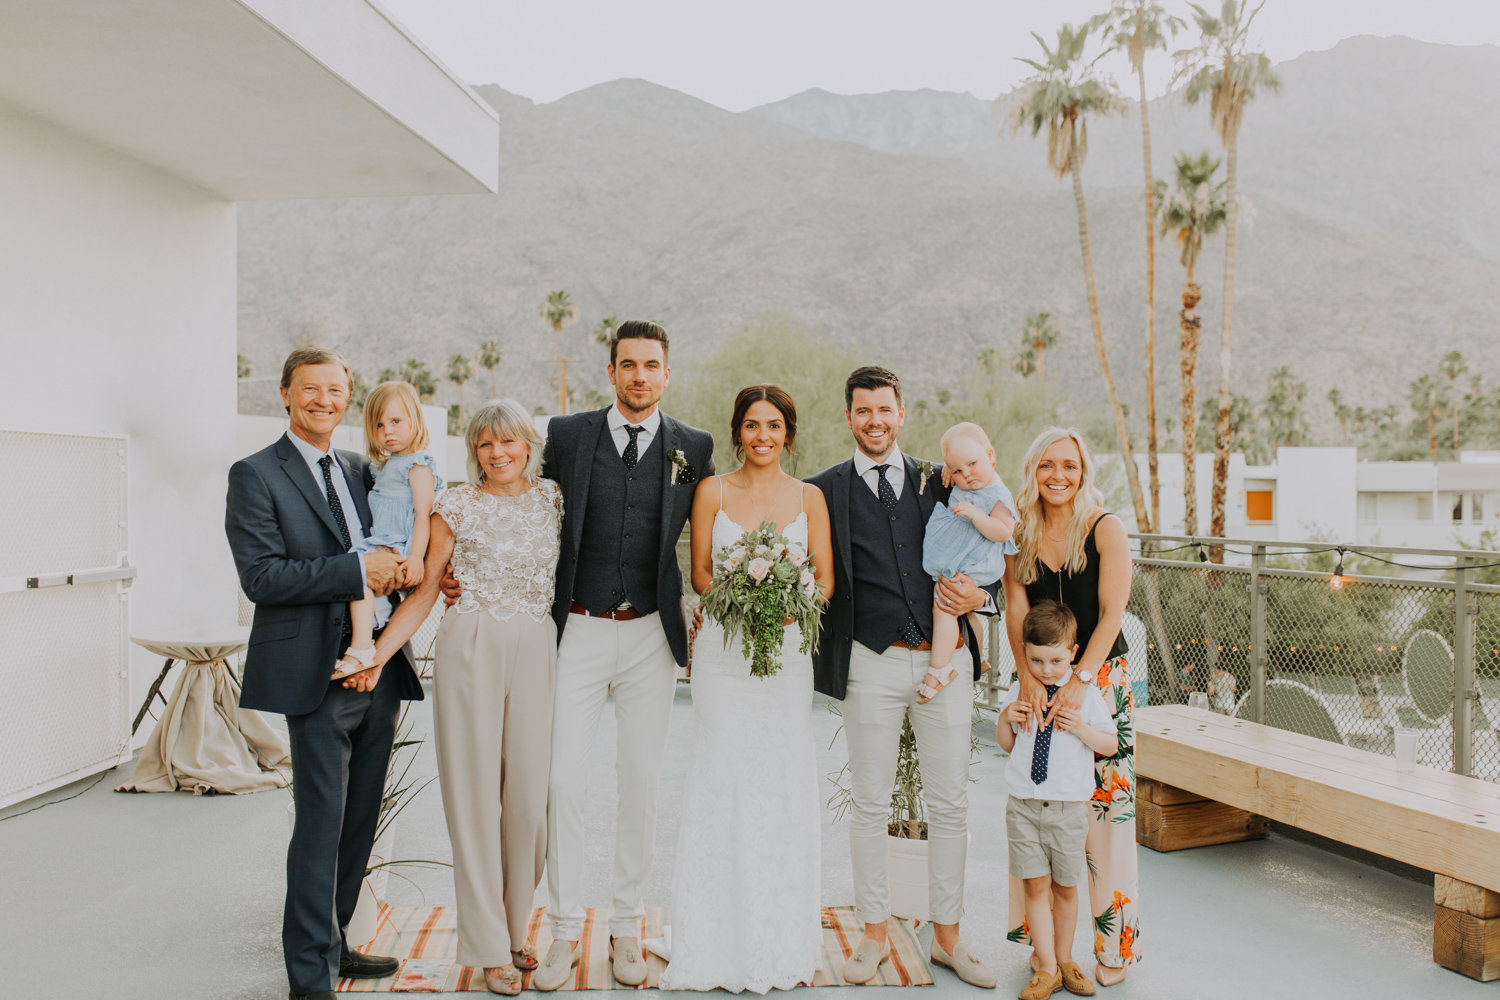 Brianna Broyles_Palm Springs Wedding Photographer_Ace Hotel Wedding_Ace Hotel Palm Springs-60